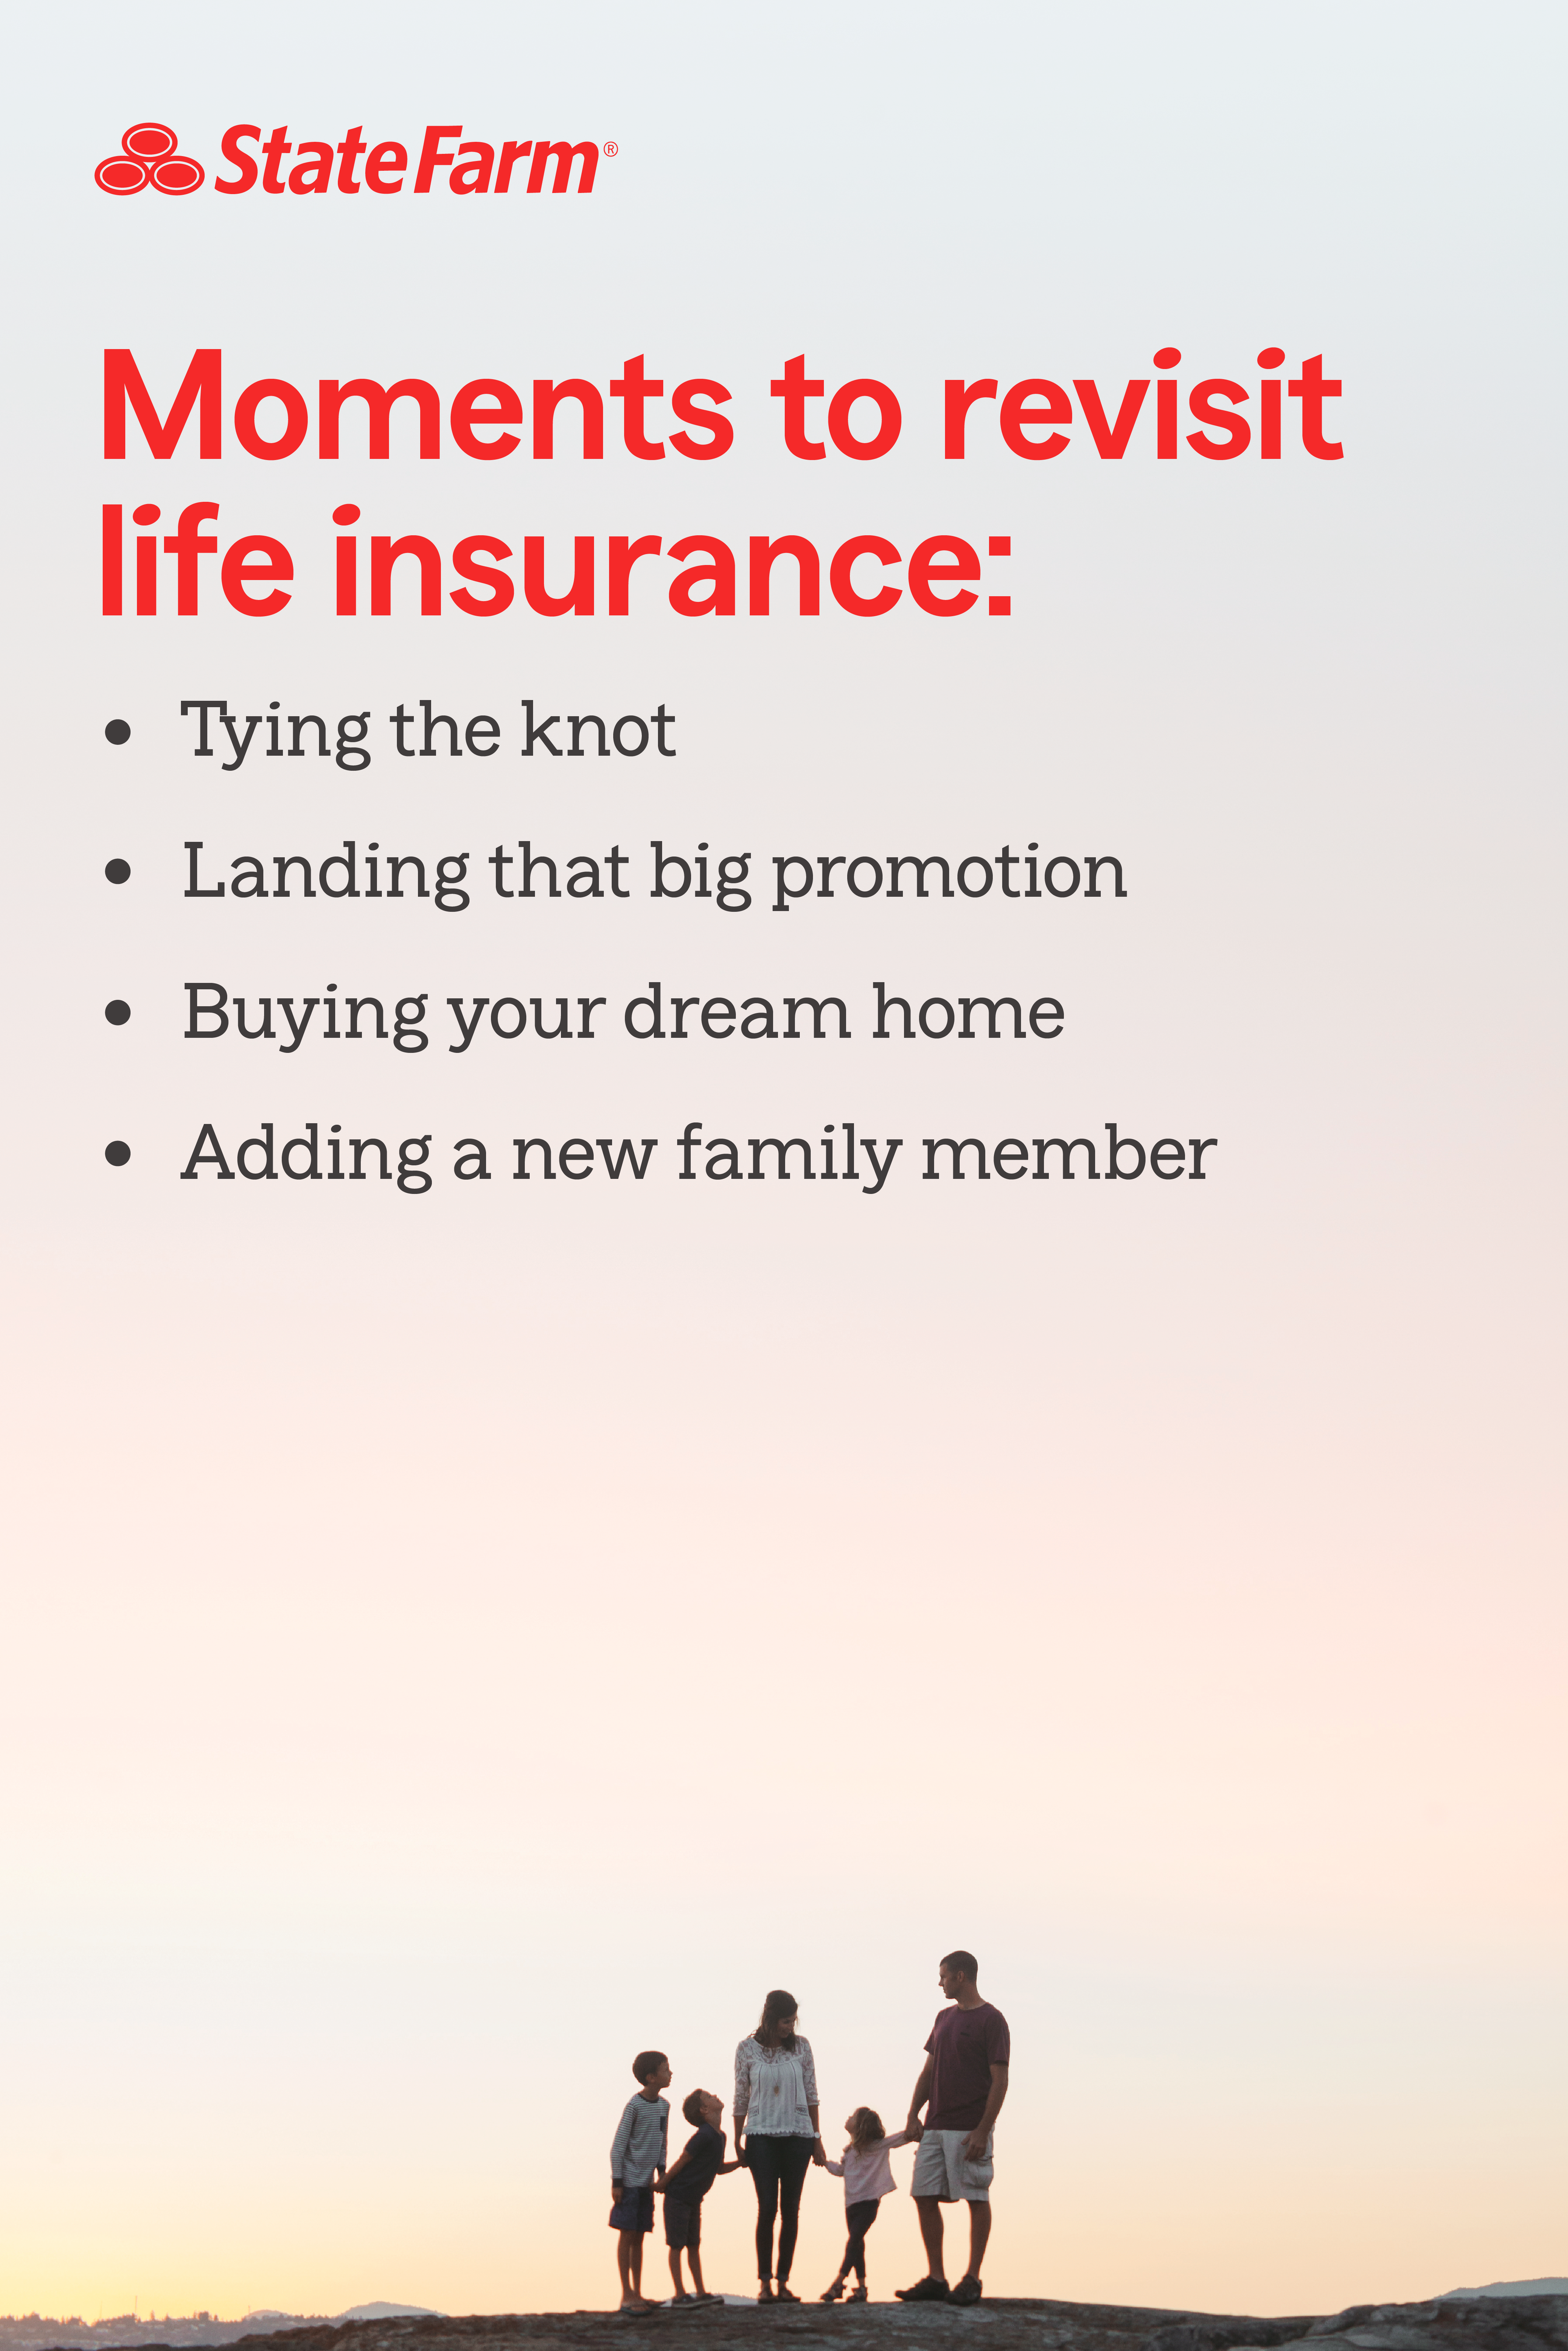 Protect what you're building with life insurance